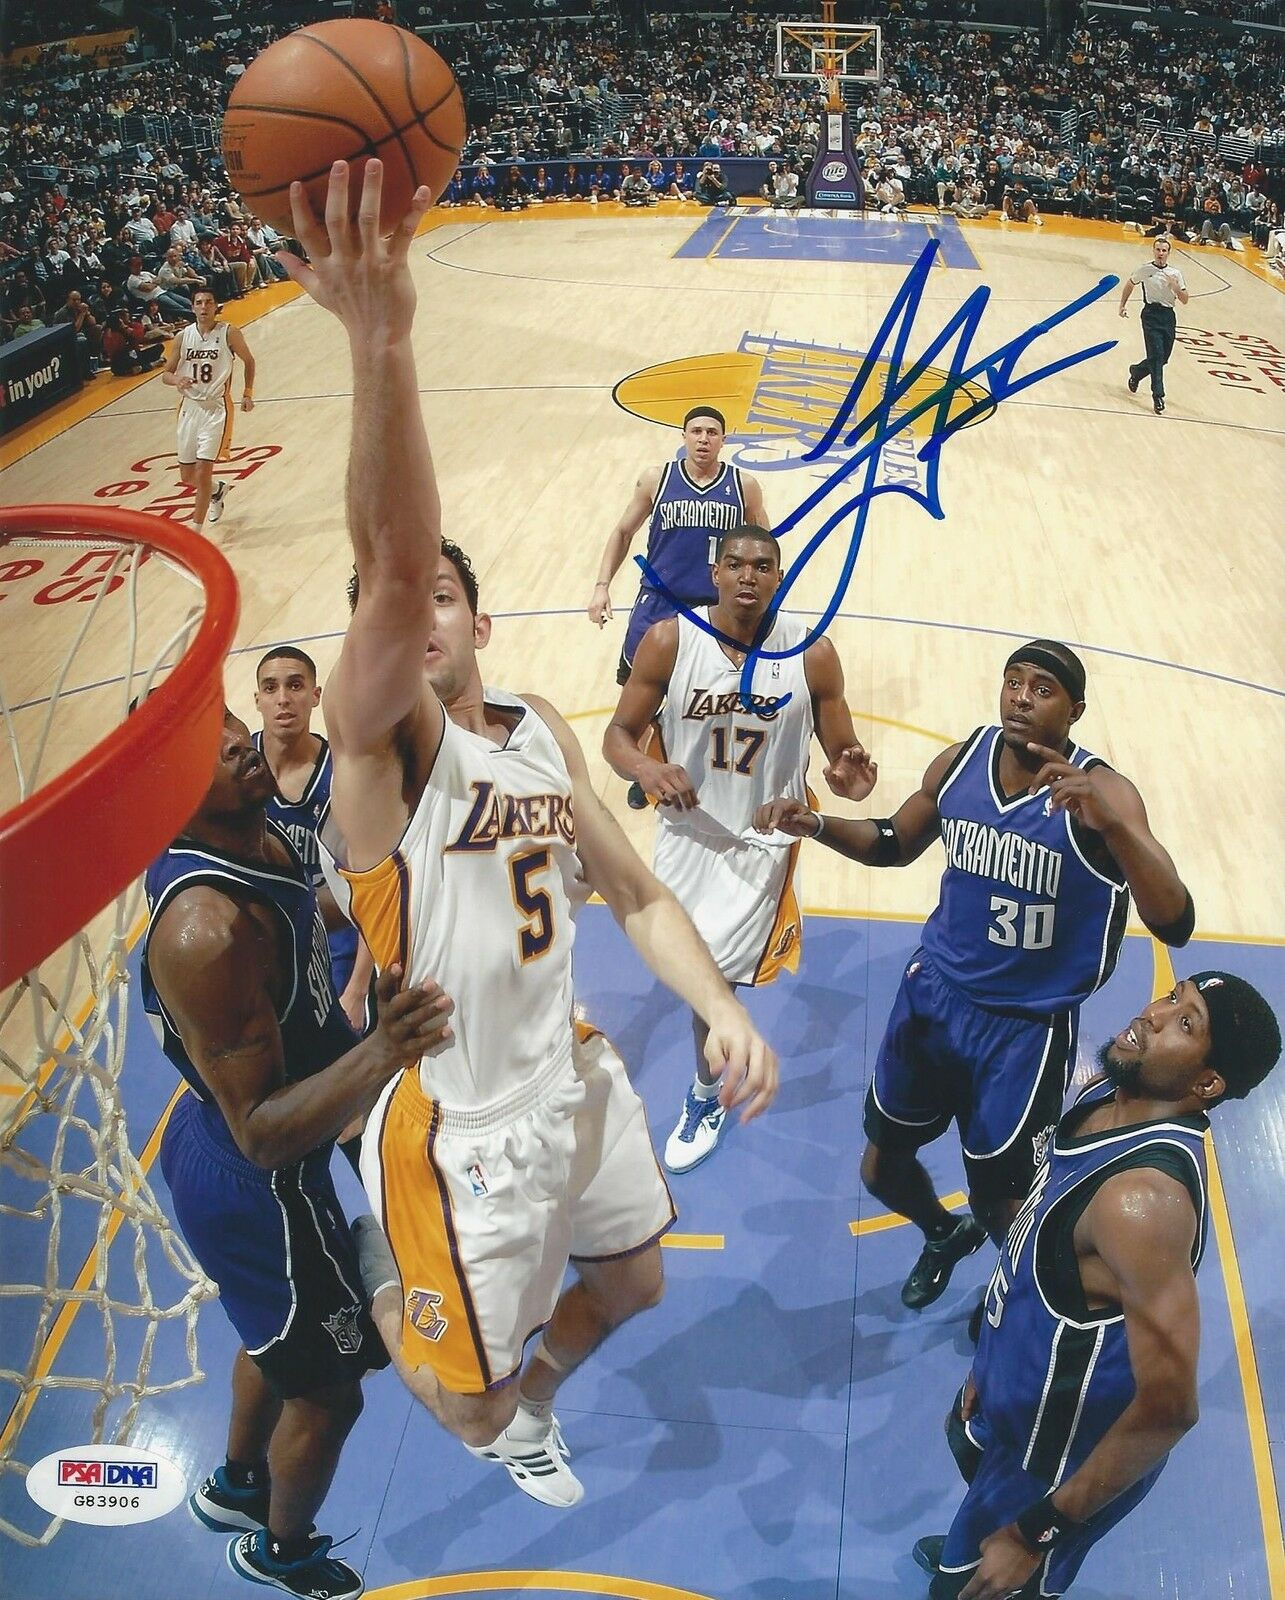 Jordan Farmar Los Angeles Lakers signed 8x10 photo PSA/DNA #G83906